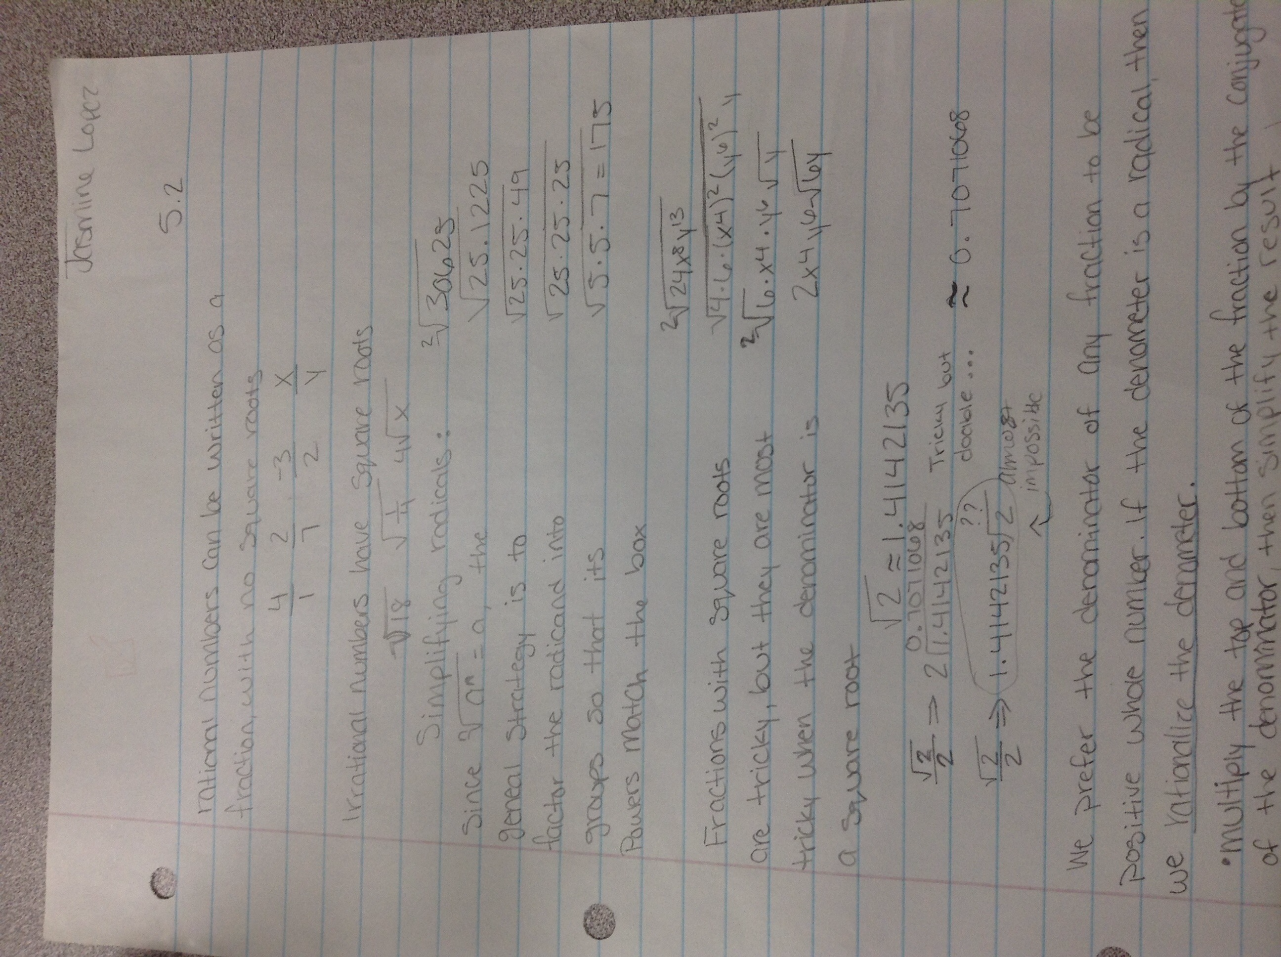 5.2 notes, simplifying radicals